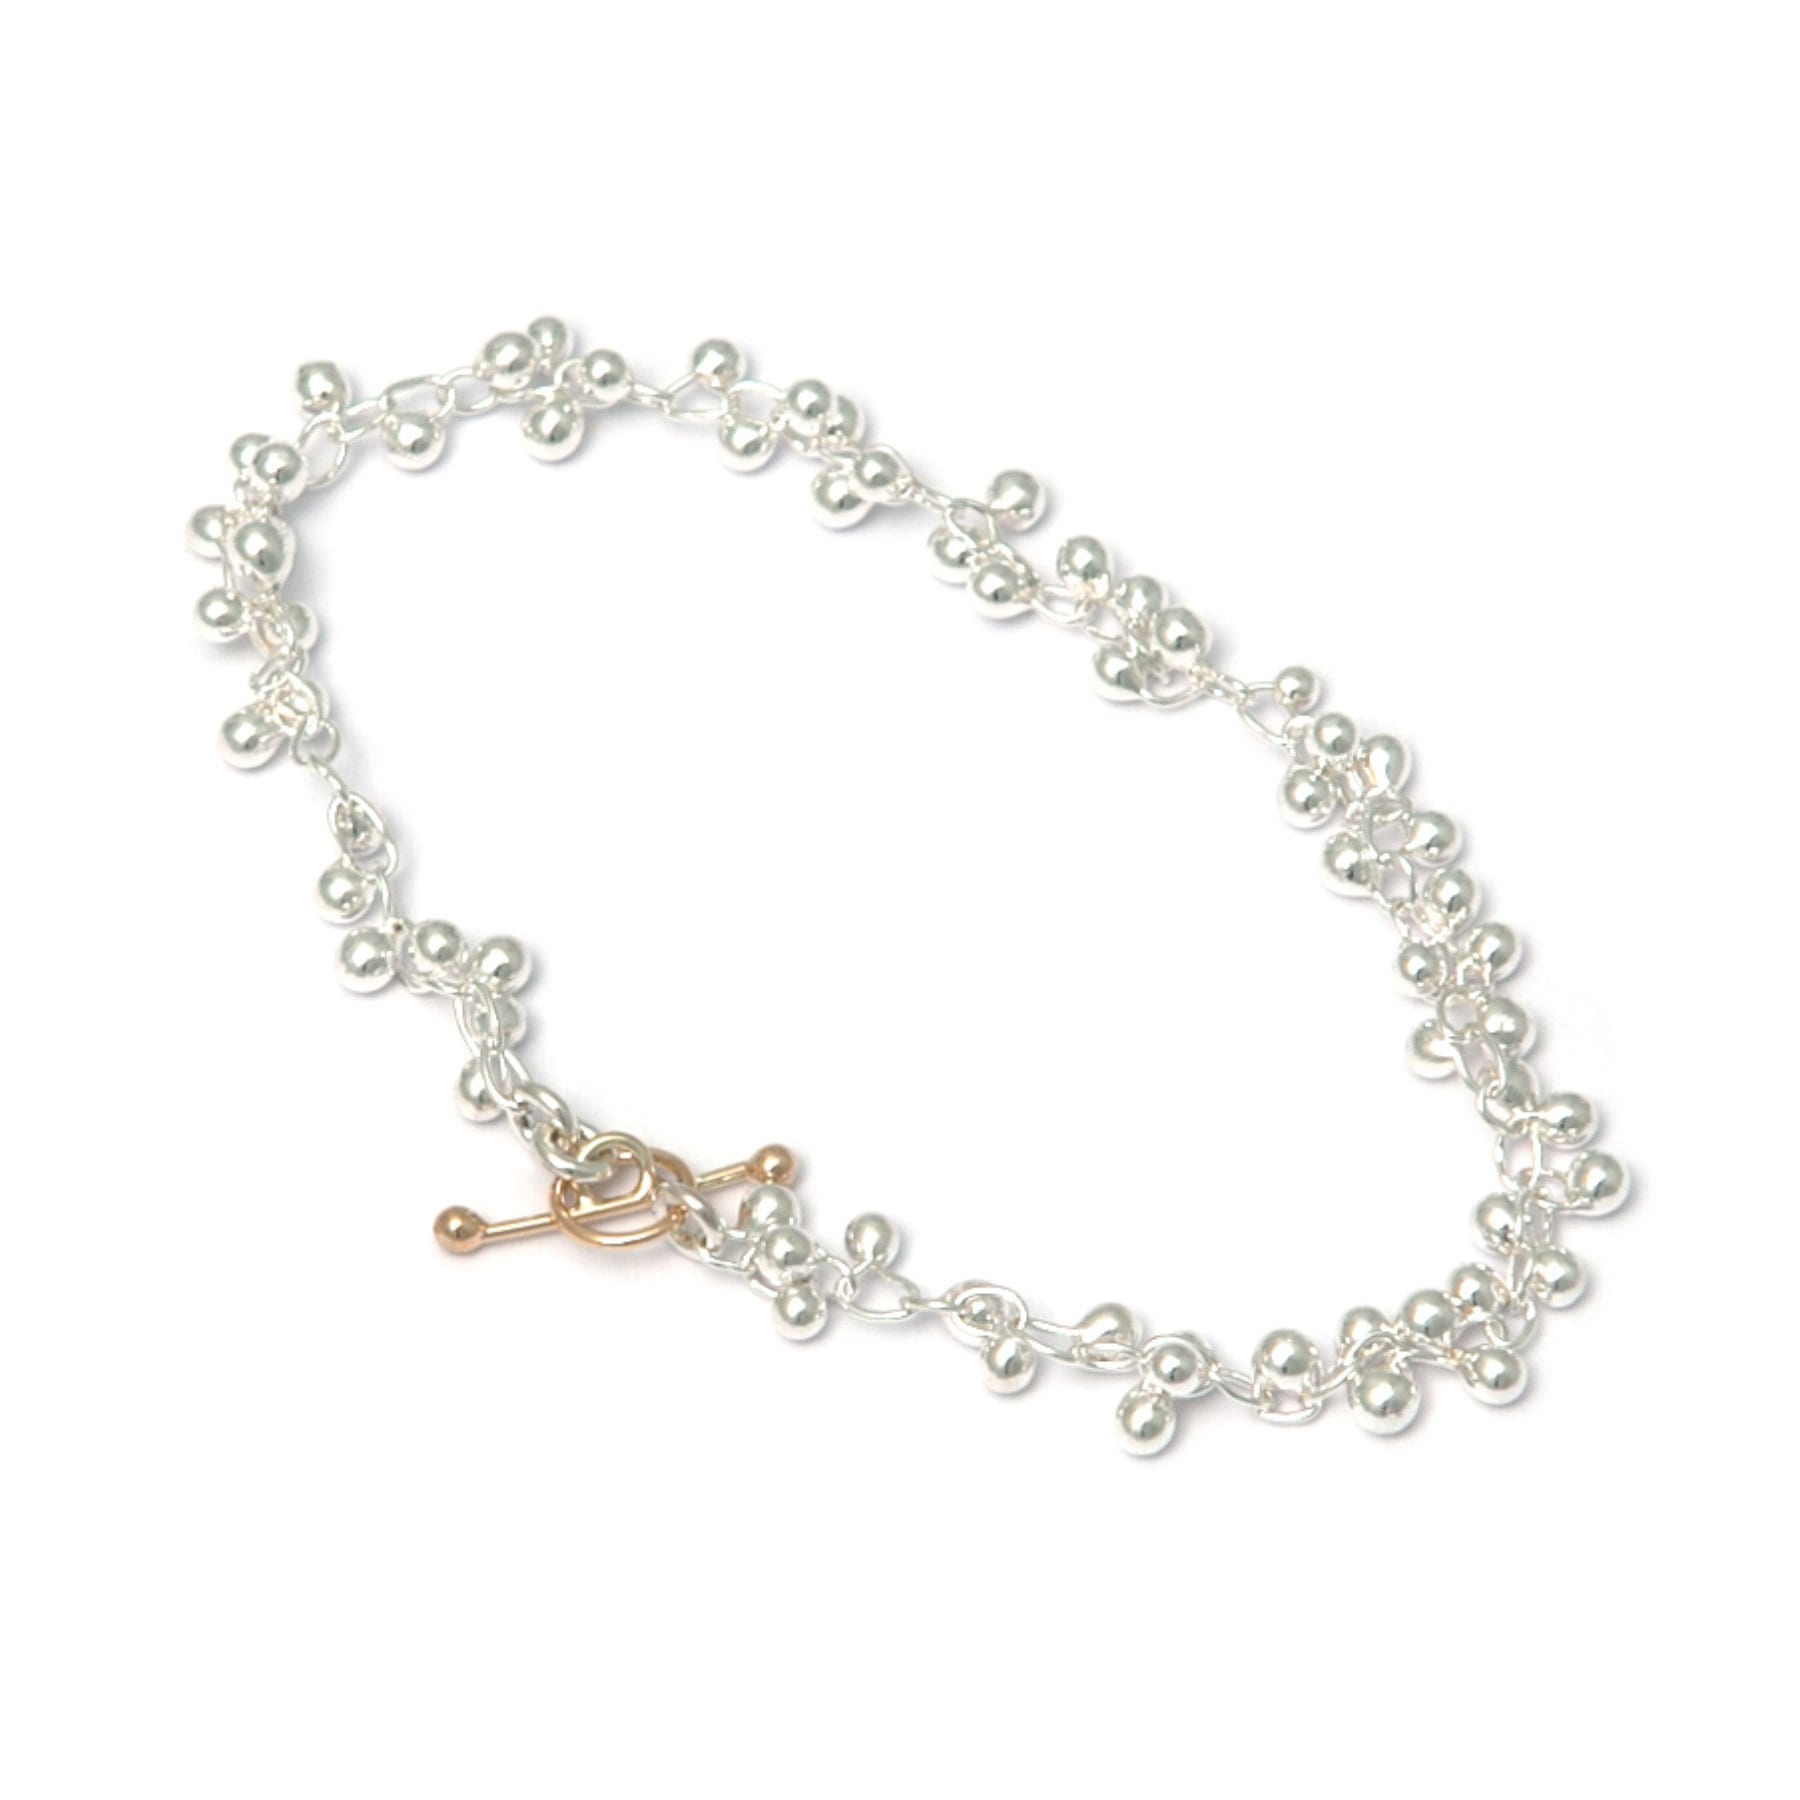 Fine Silver and 14k Yellow Gold Beaded Bracelet